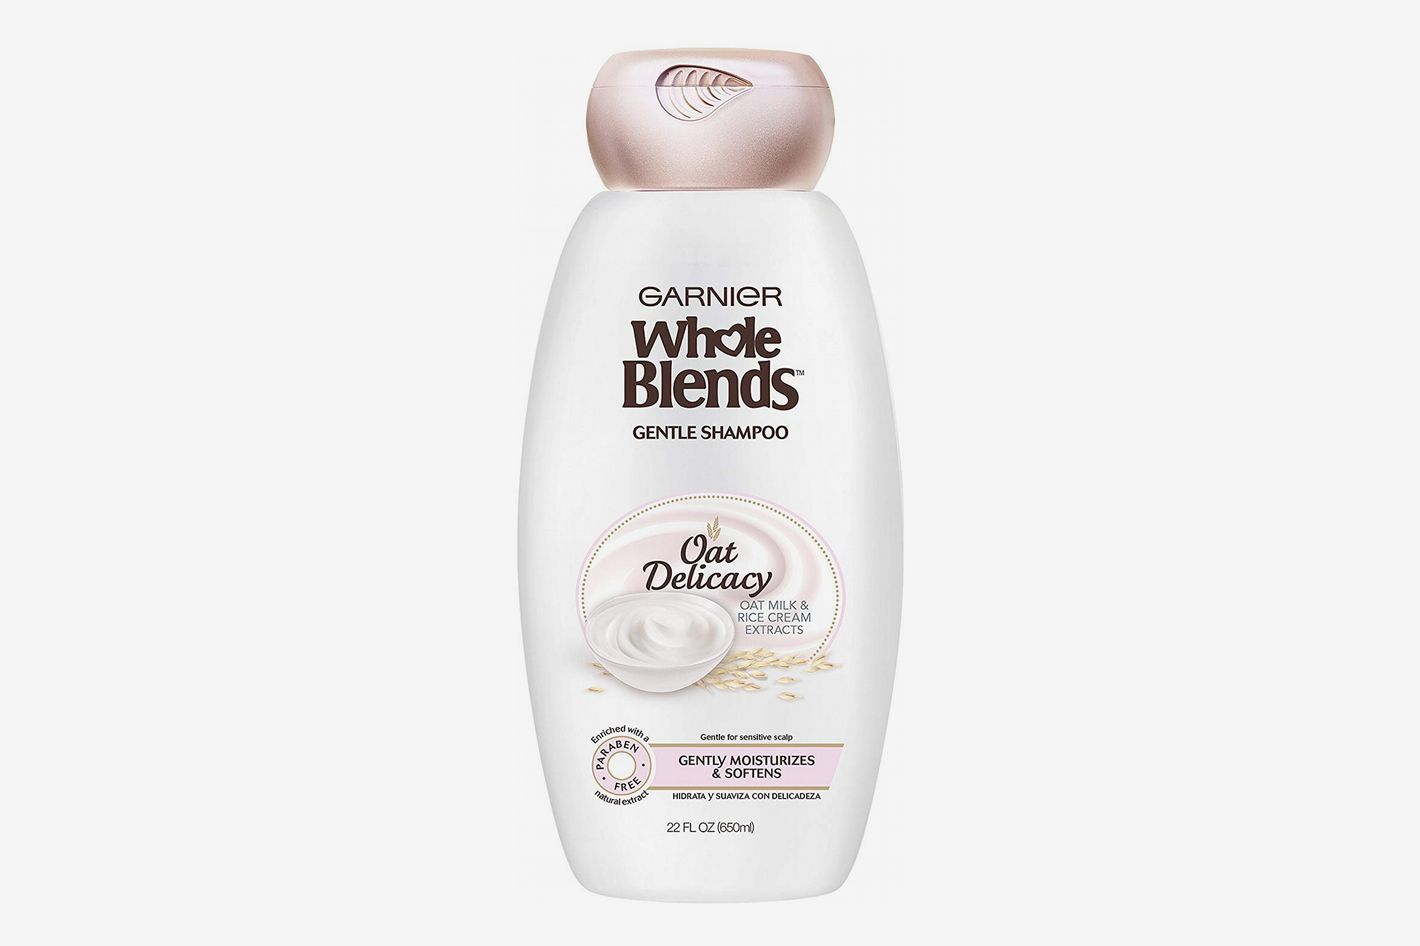 Garnier Whole Blends Gentle Shampoo Oat Delicacy